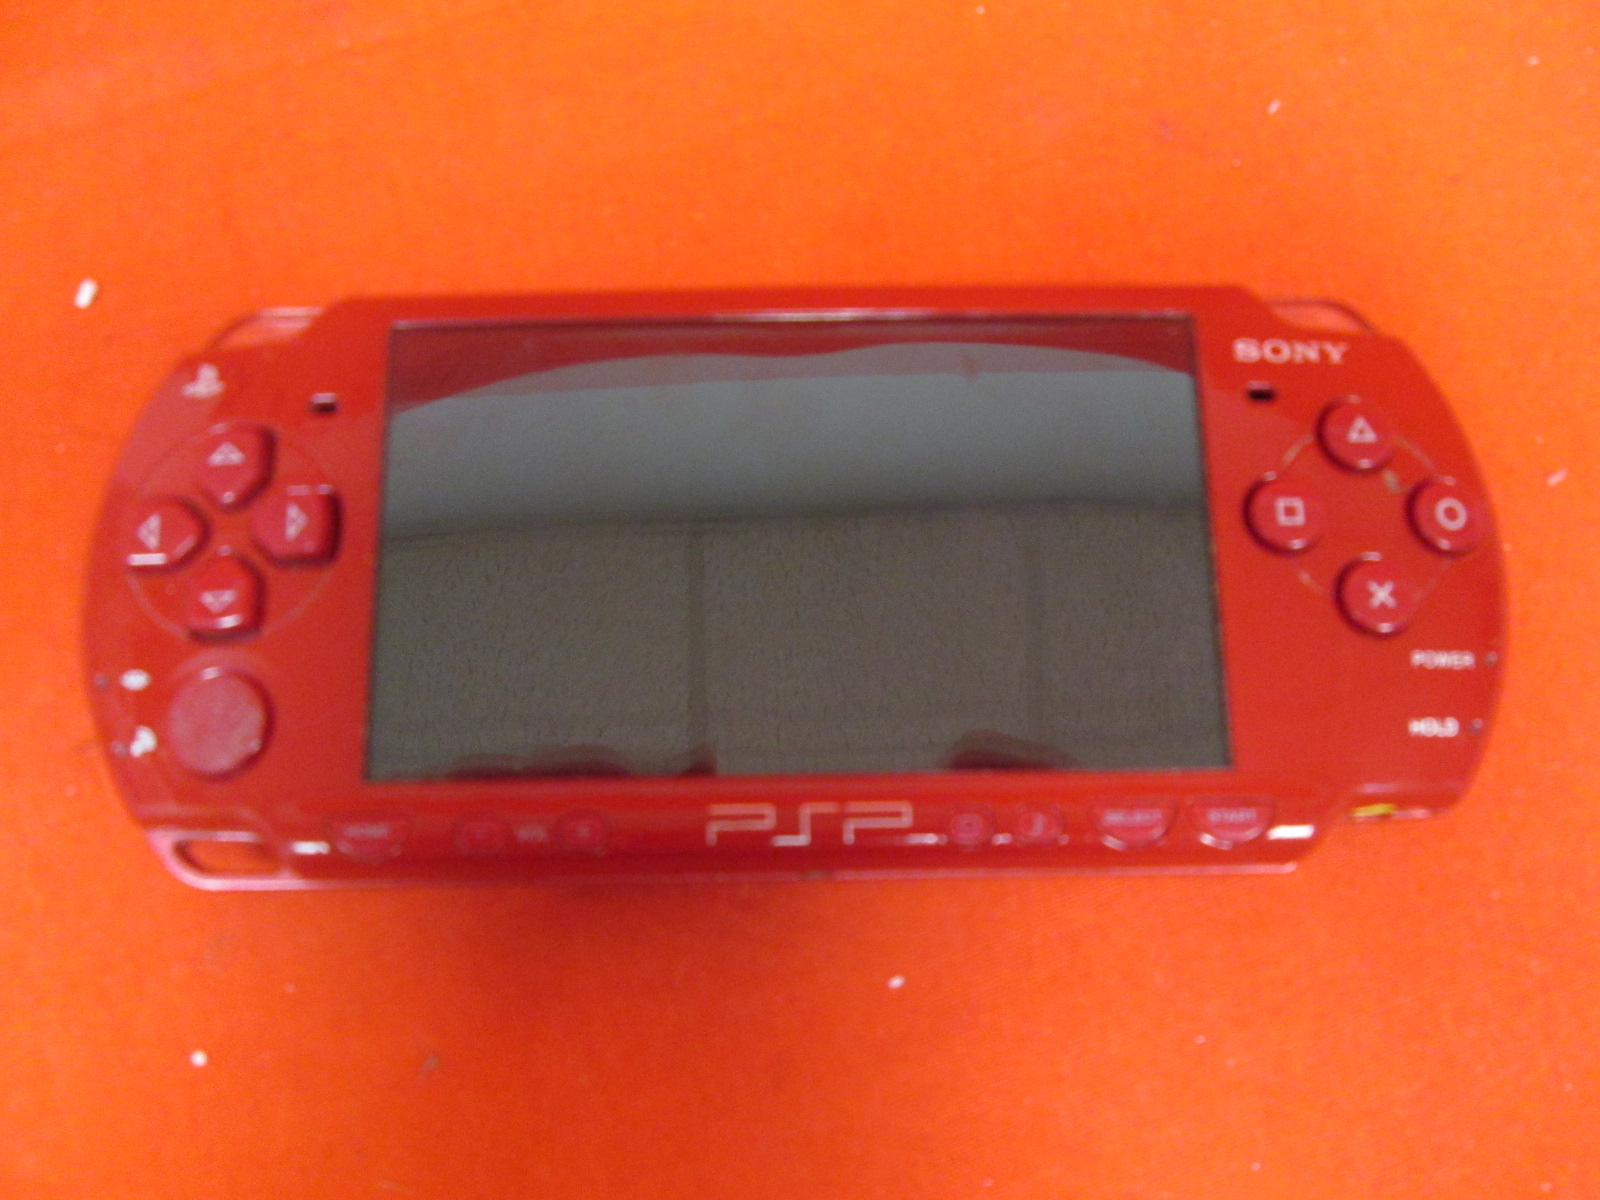 Sony PSP-2001 Black With God Of War Red Faceplate Handheld System